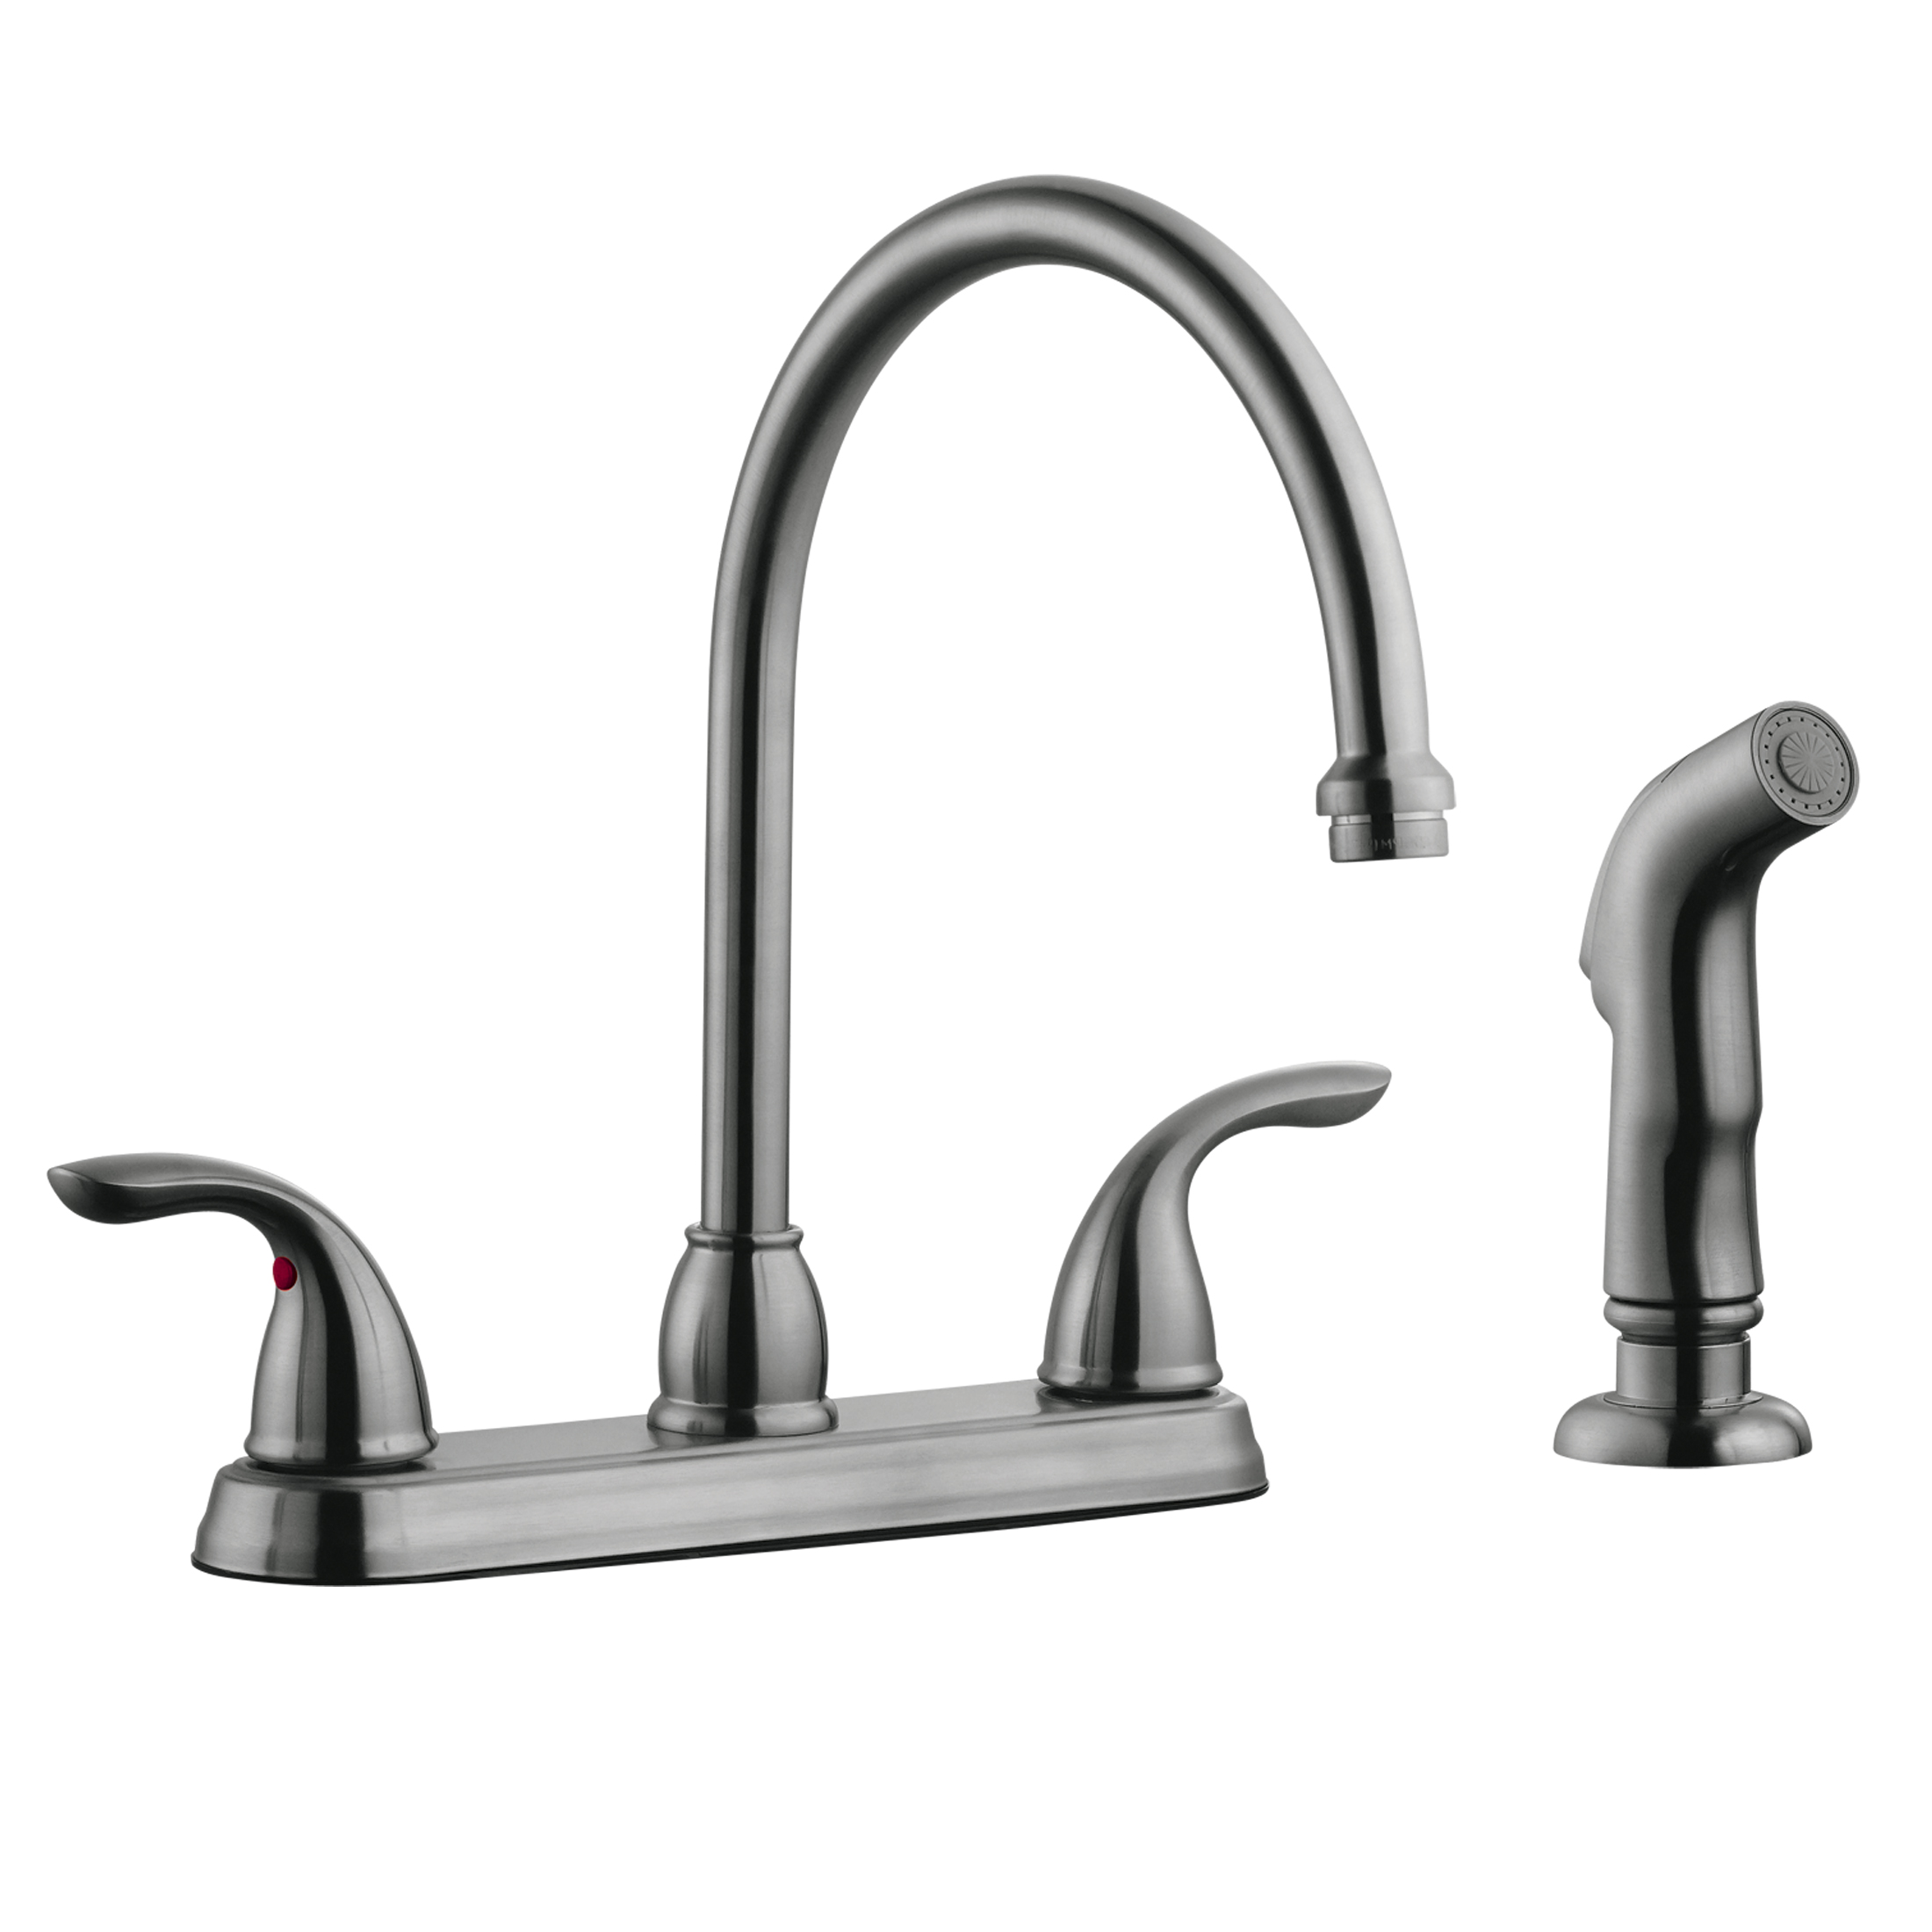 ashland high arch kitchen faucet 525089 plumbing design house. Black Bedroom Furniture Sets. Home Design Ideas